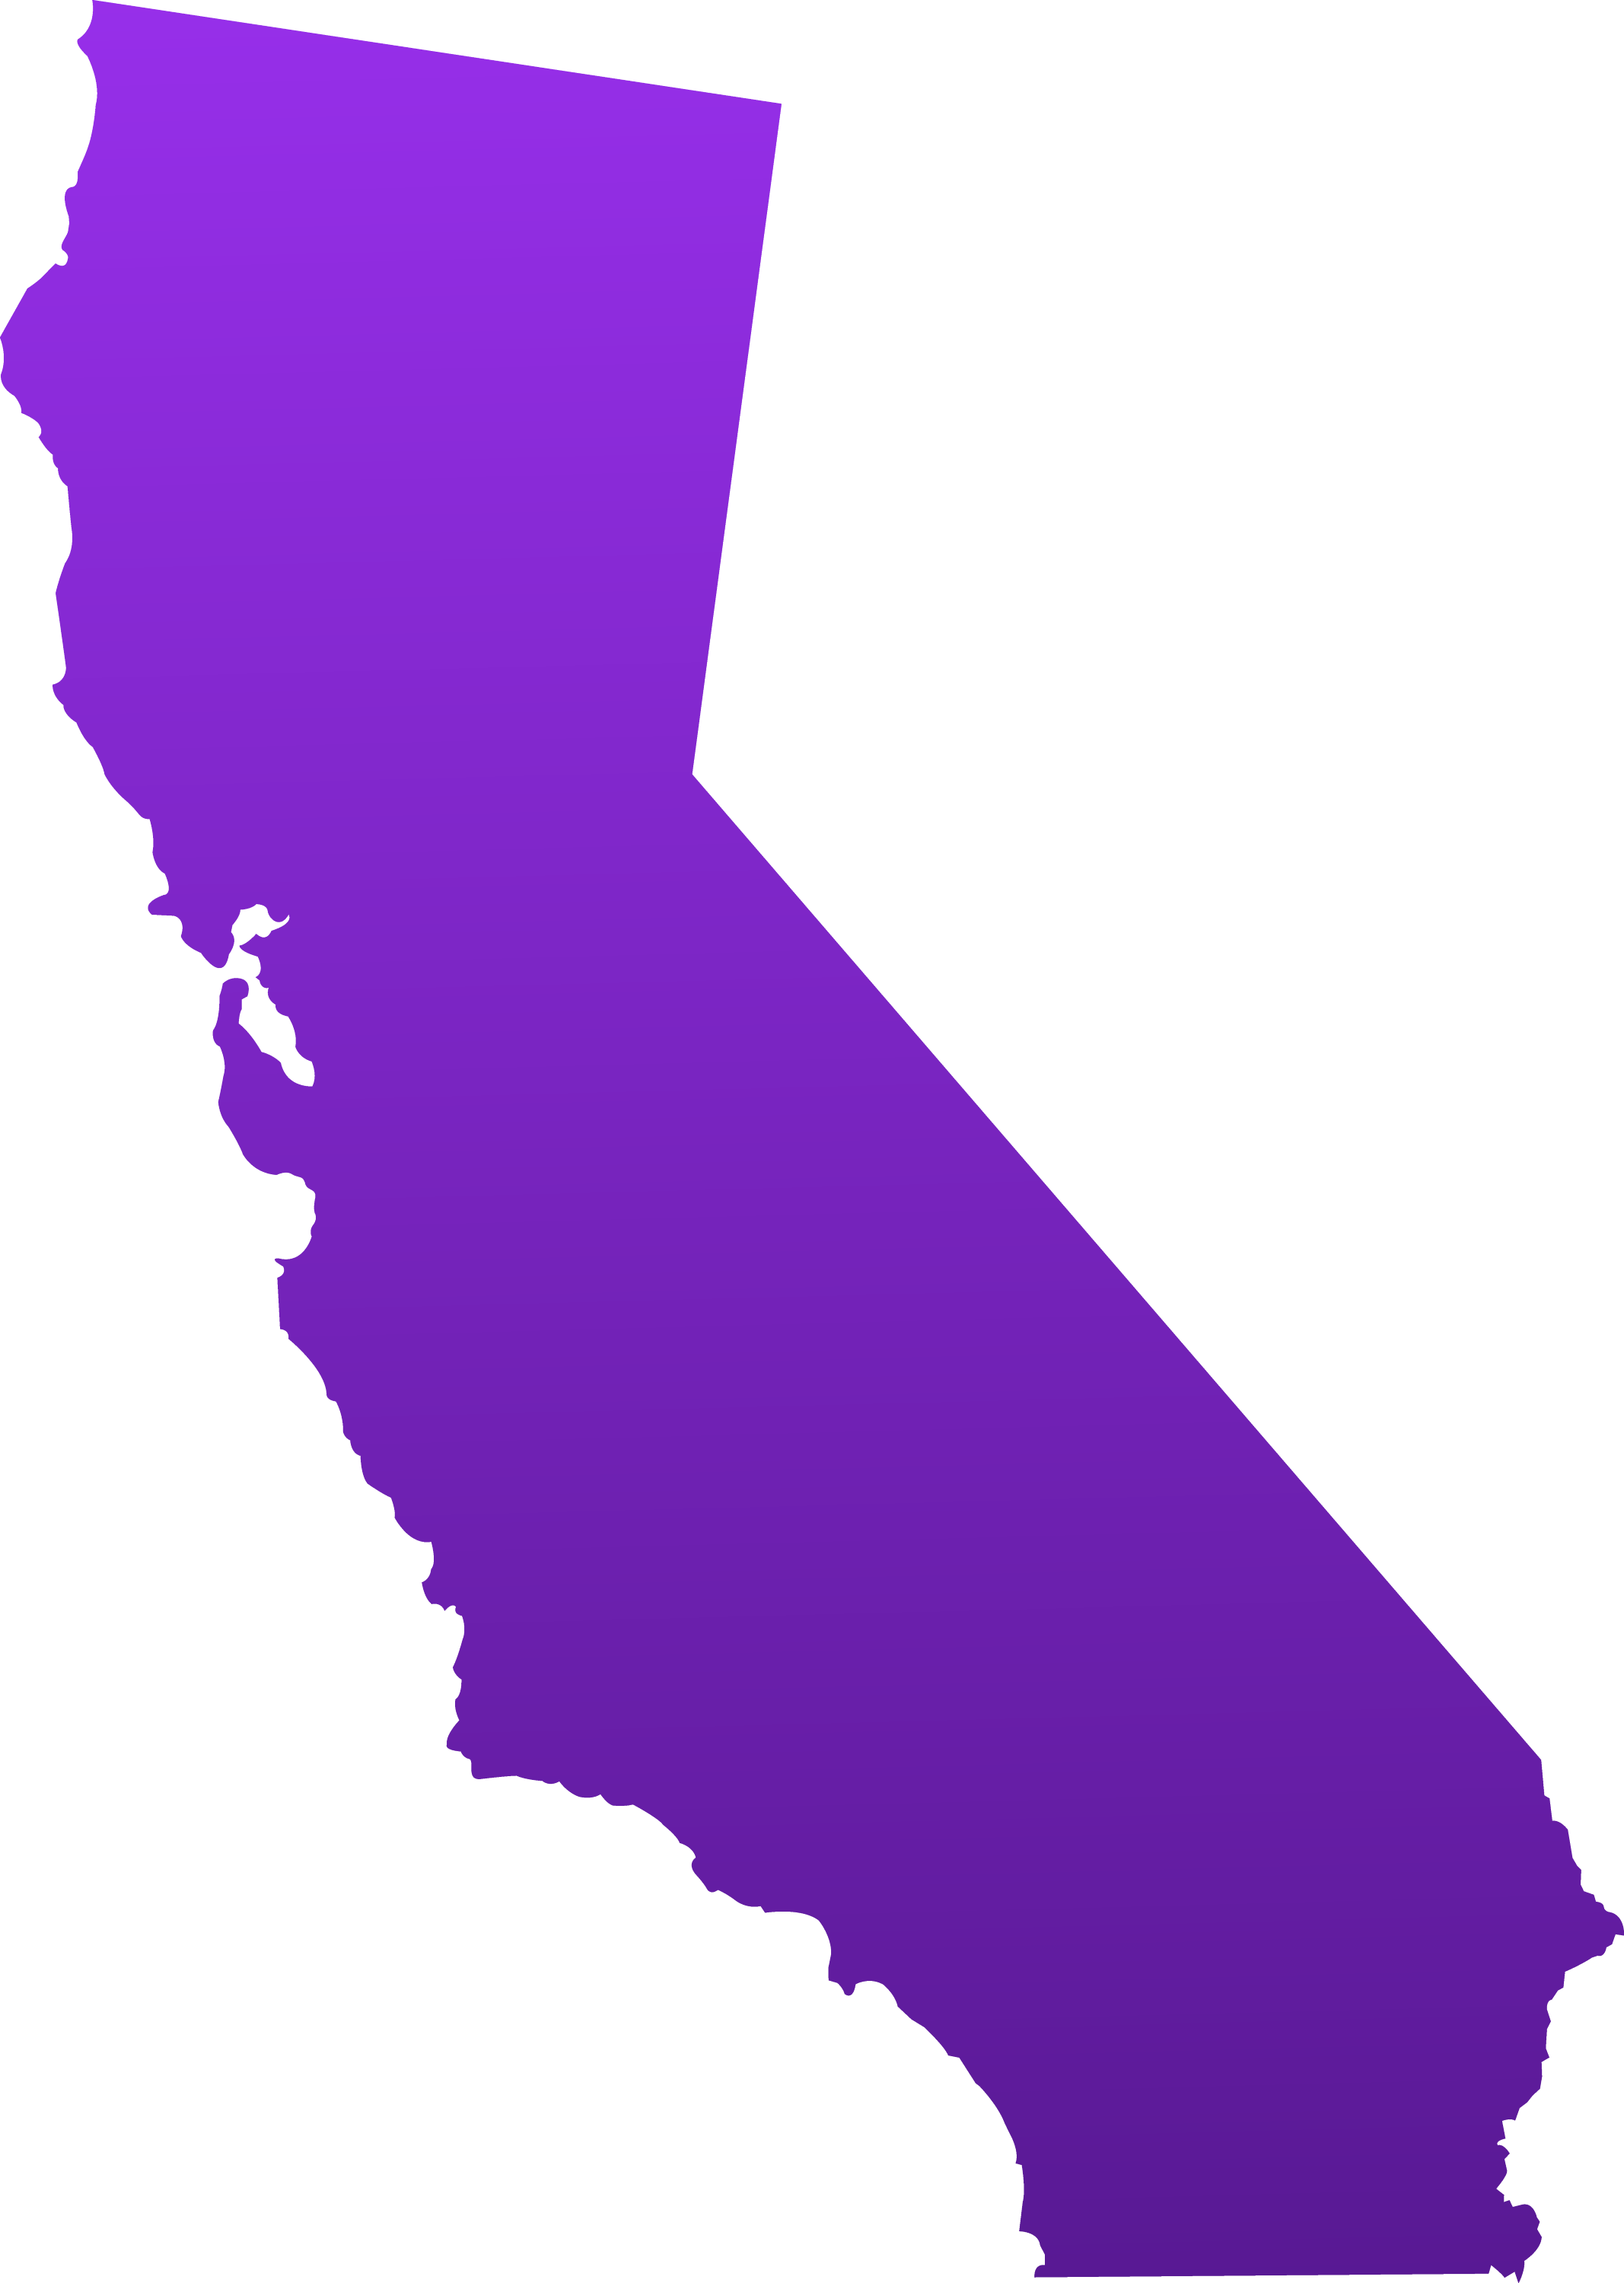 clip art california map - photo #2